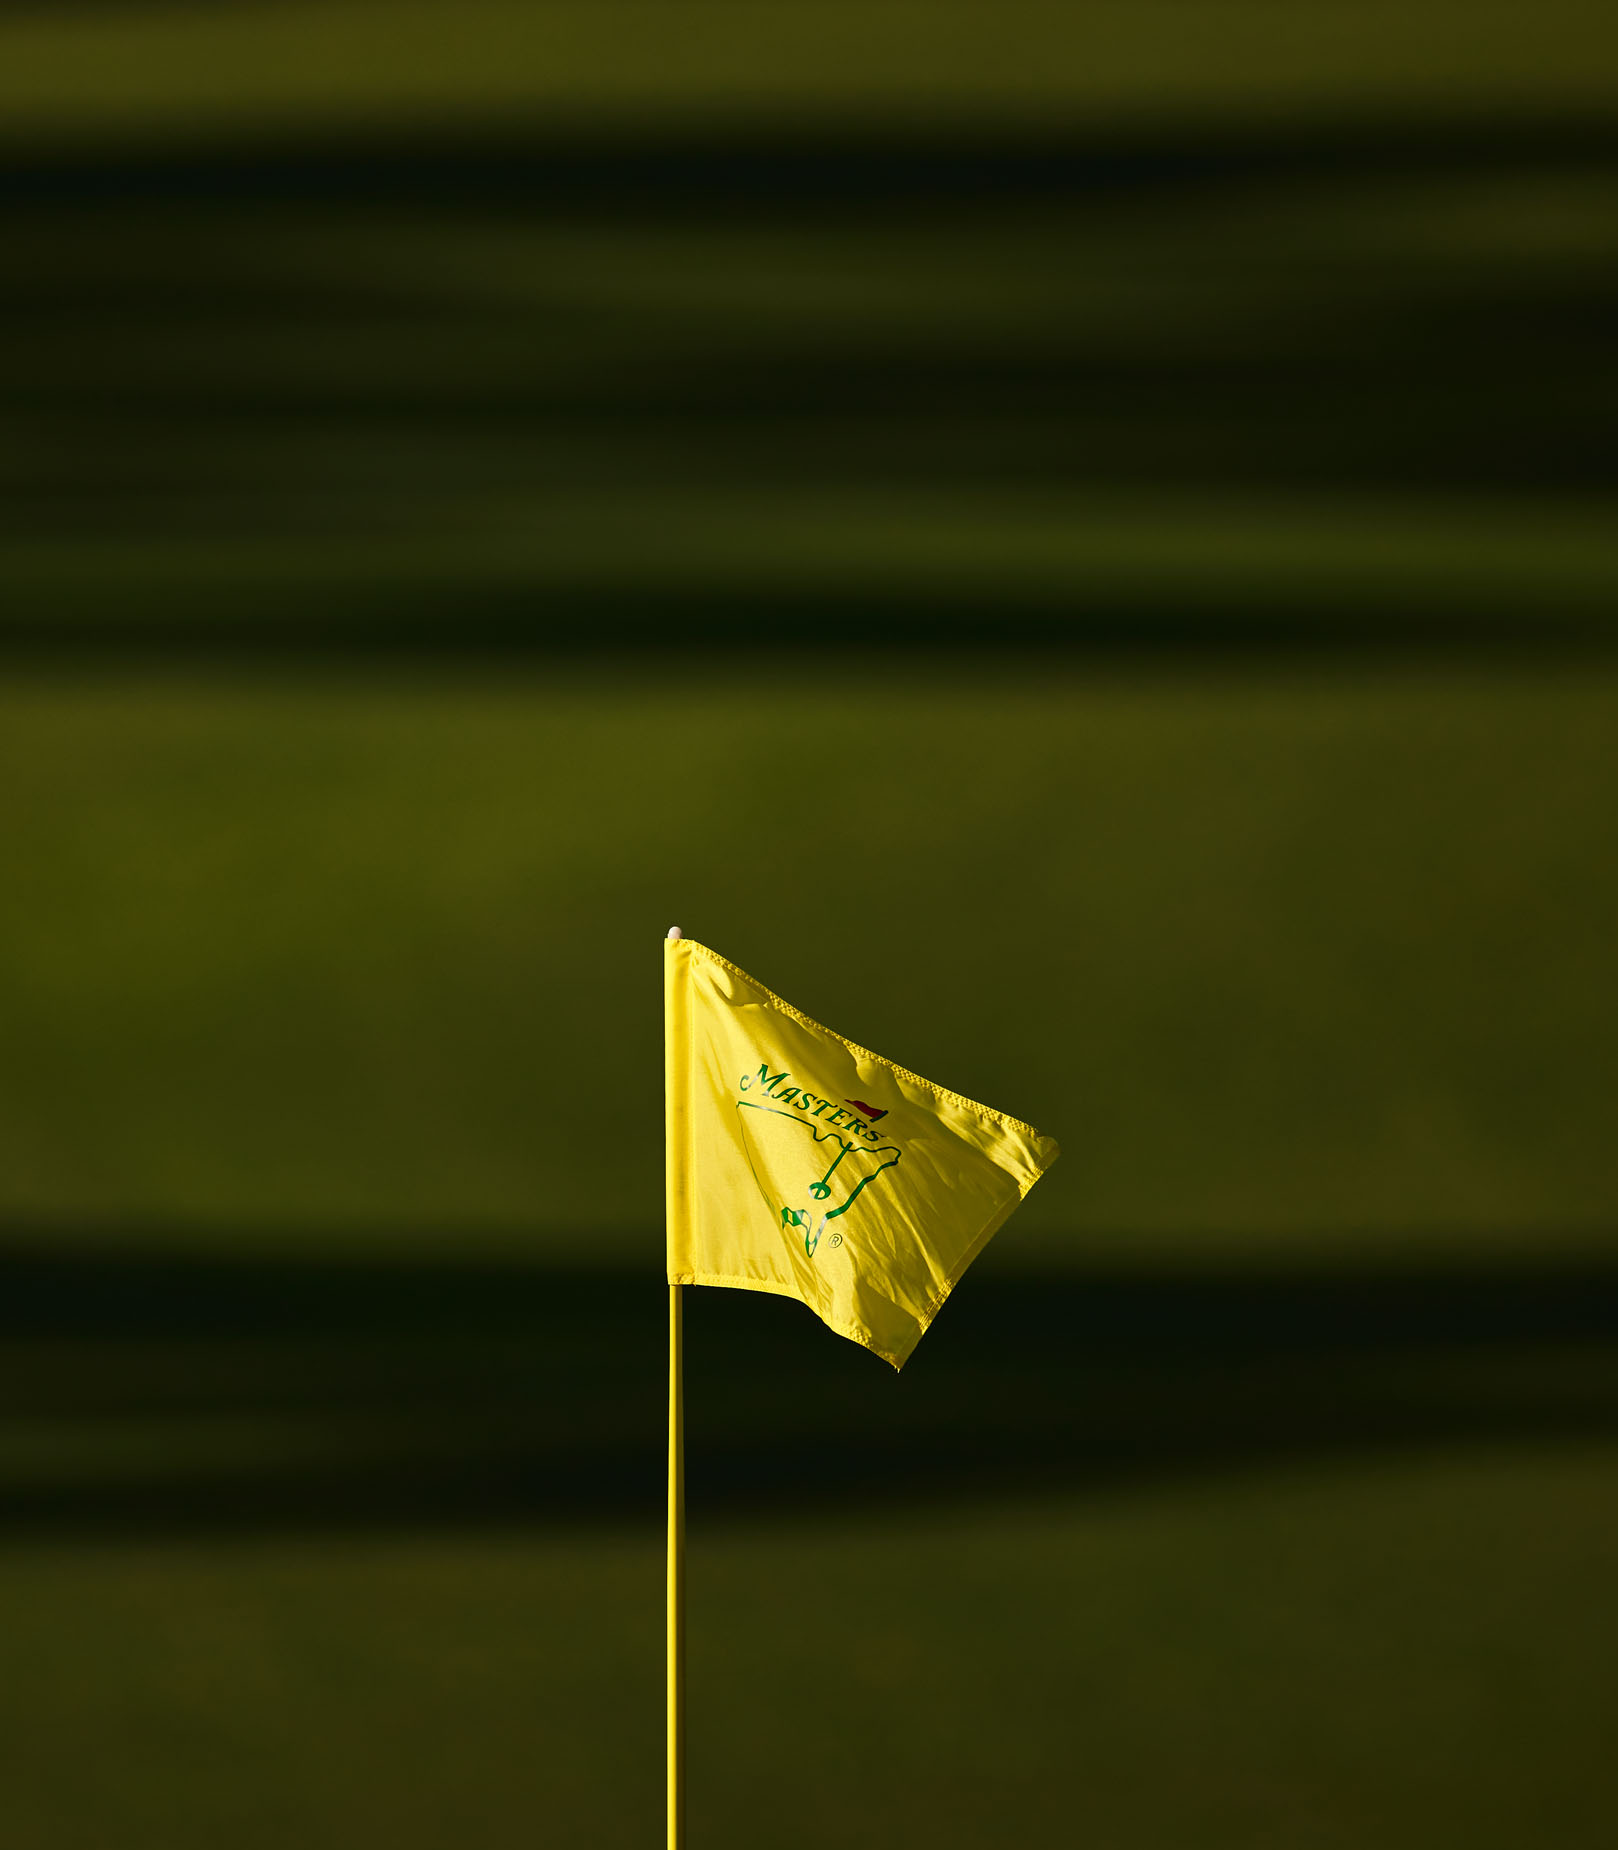 The 2020 Masters - Golf Magazine - Stephen Denton Photography - Los Angeles, CA Commercial Photographer